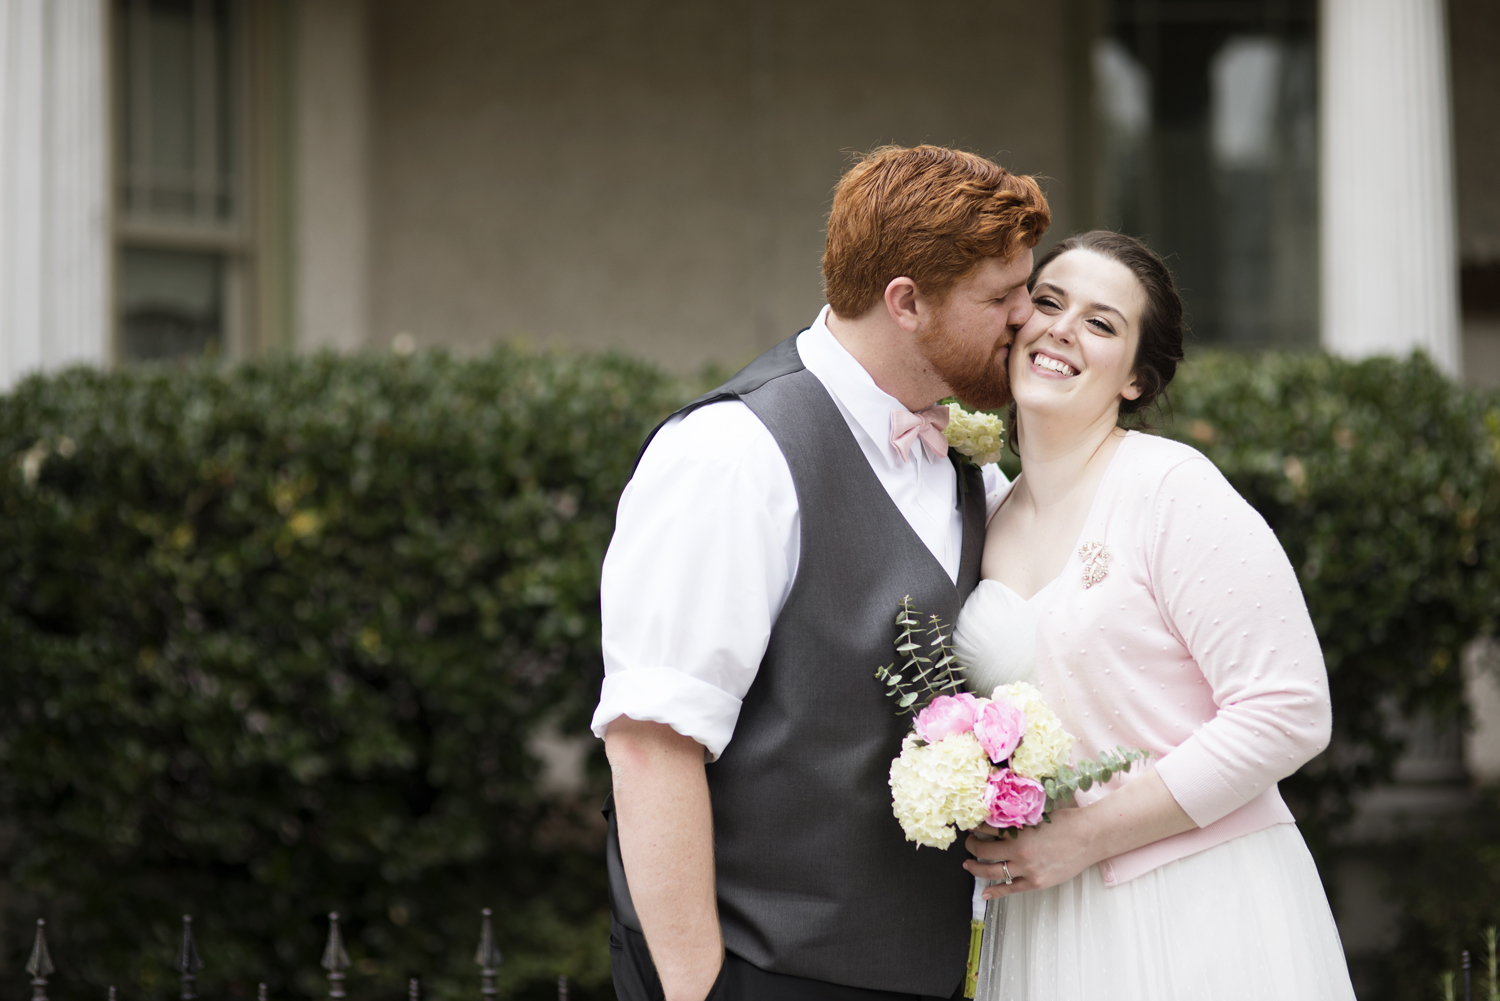 A groom kisses his bride, wearing a pink cardigan, on the cheek after their wedding